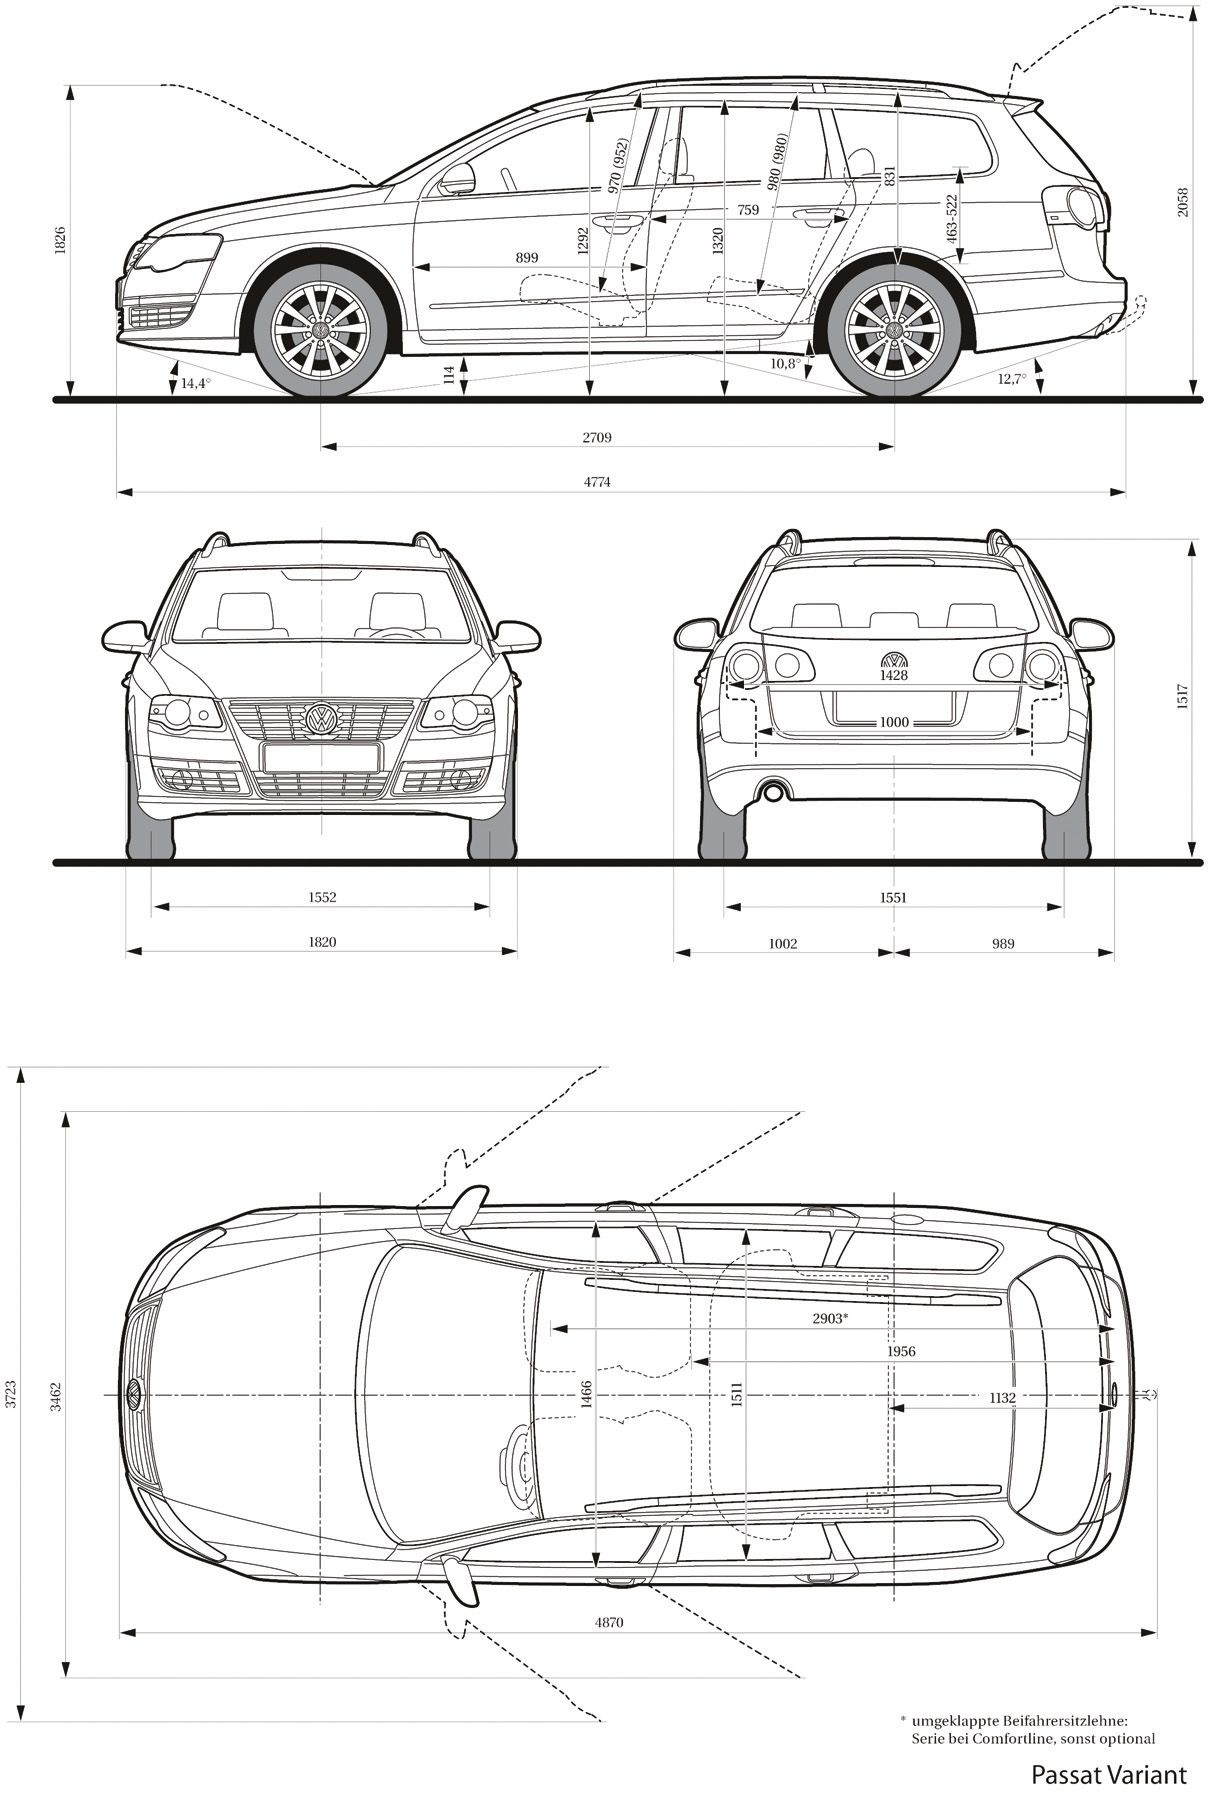 Volkswagen passat variant 2005 blueprint database for Blueprint sizes